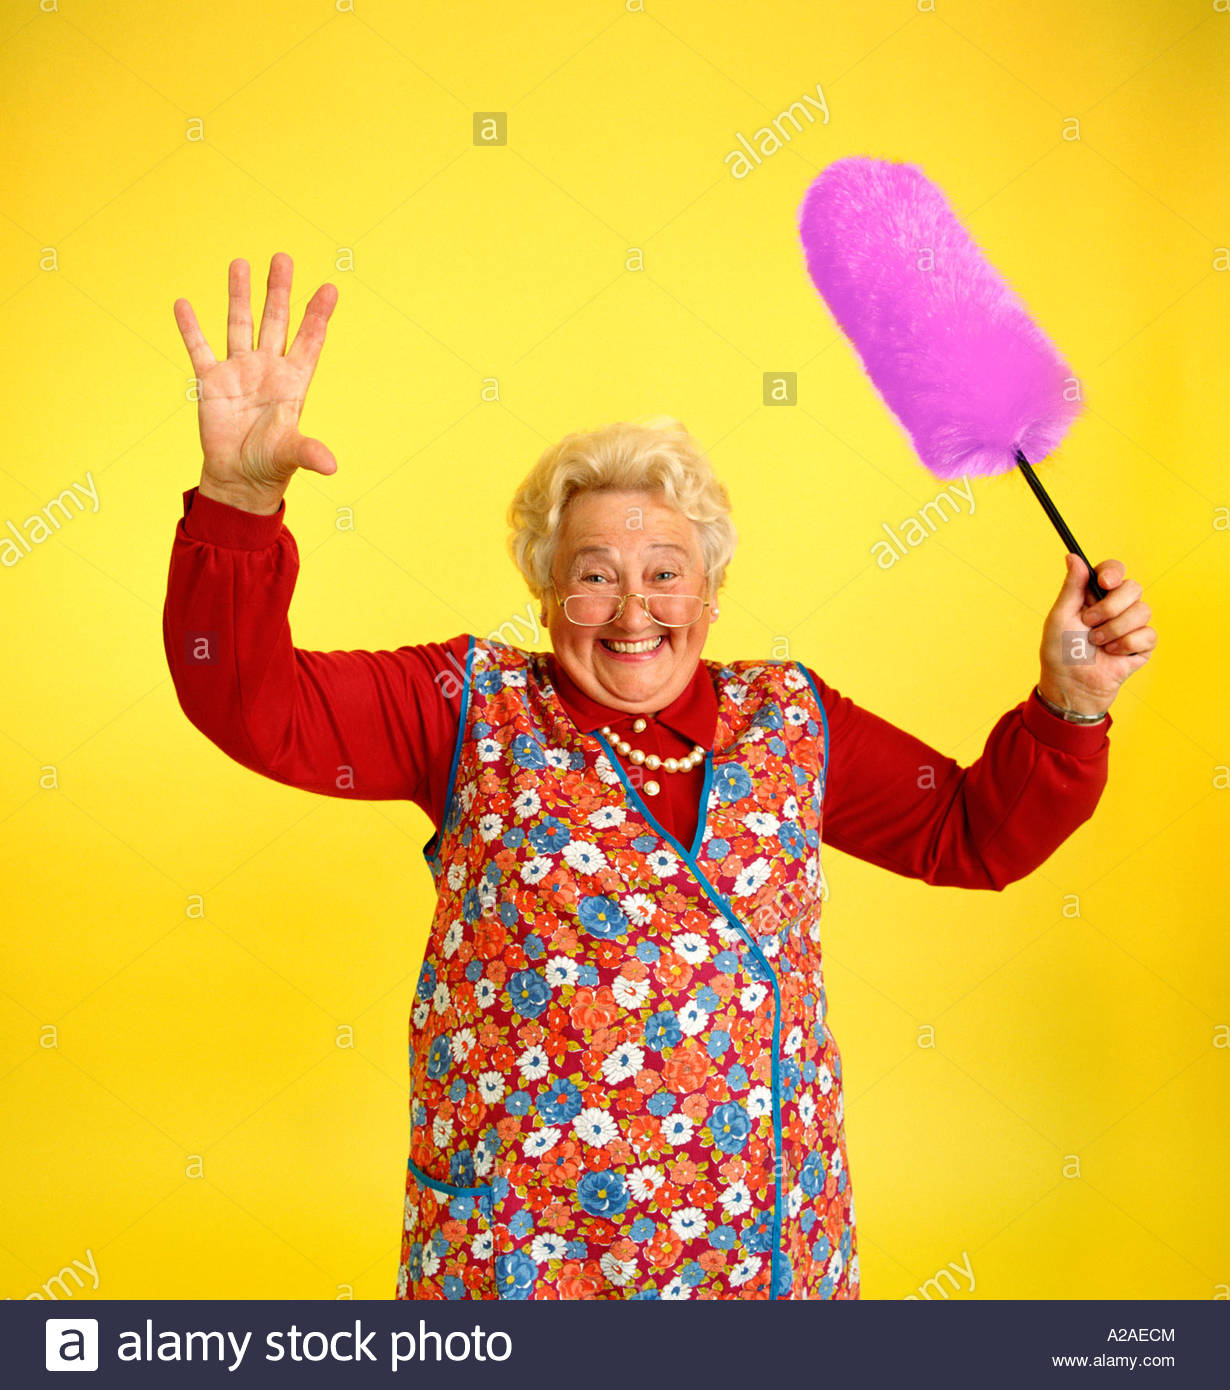 Règles et demande d'accès aux PA - Page 19 A-gleeful-granny-waves-her-bright-pink-feather-duster-wearing-a-floral-A2AECM